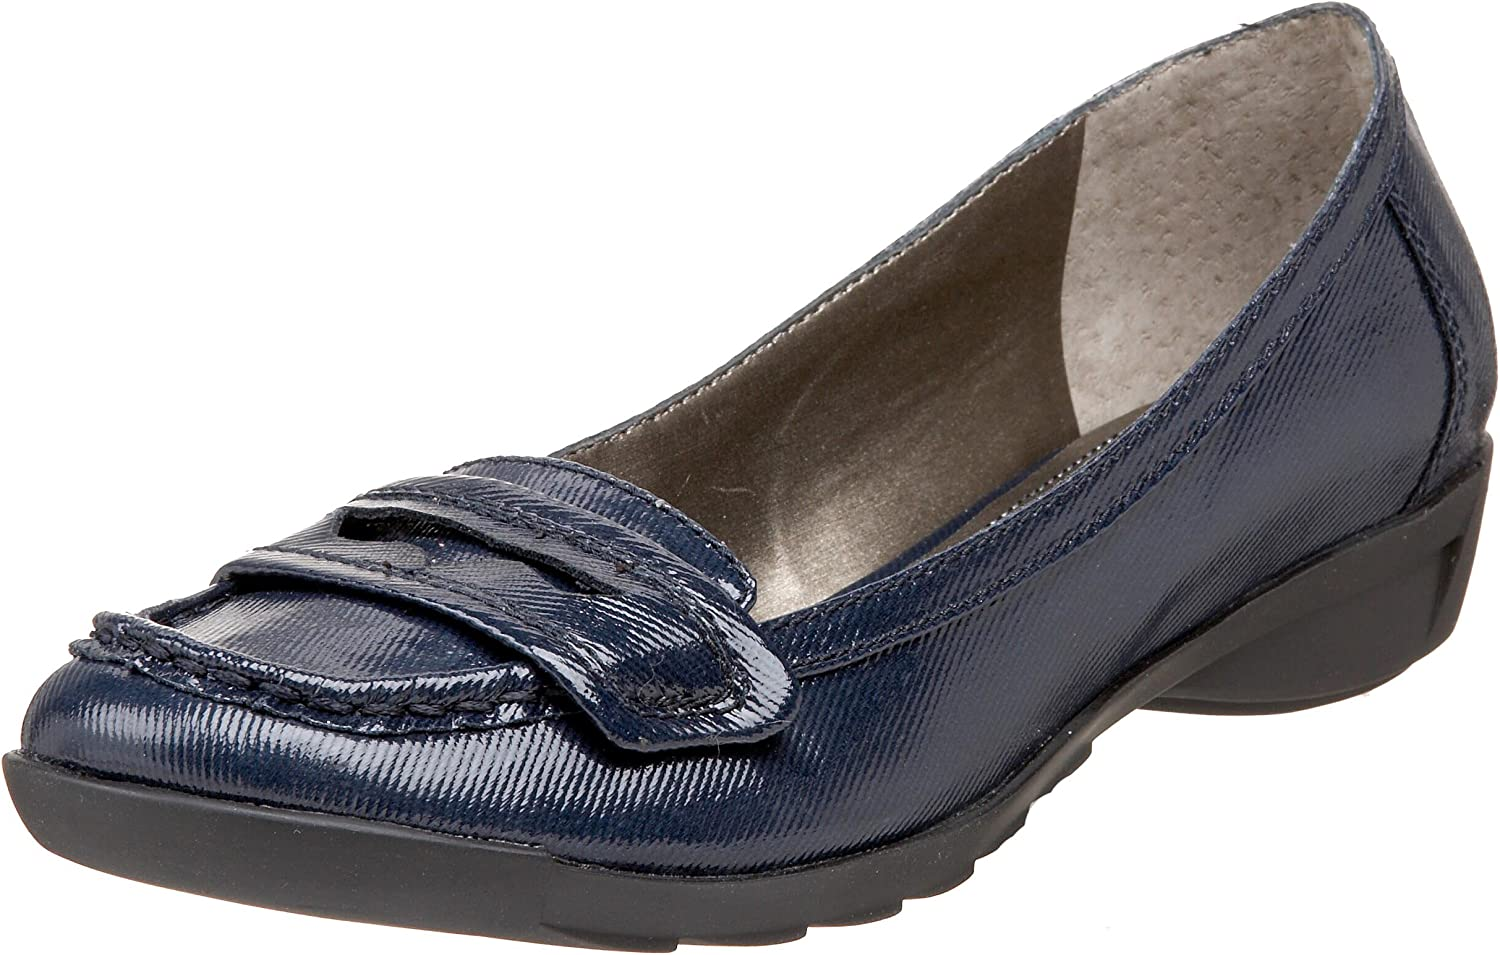 Kenneth Cole REACTION Women's Girl Loafer depot Don't miss the campaign Ace